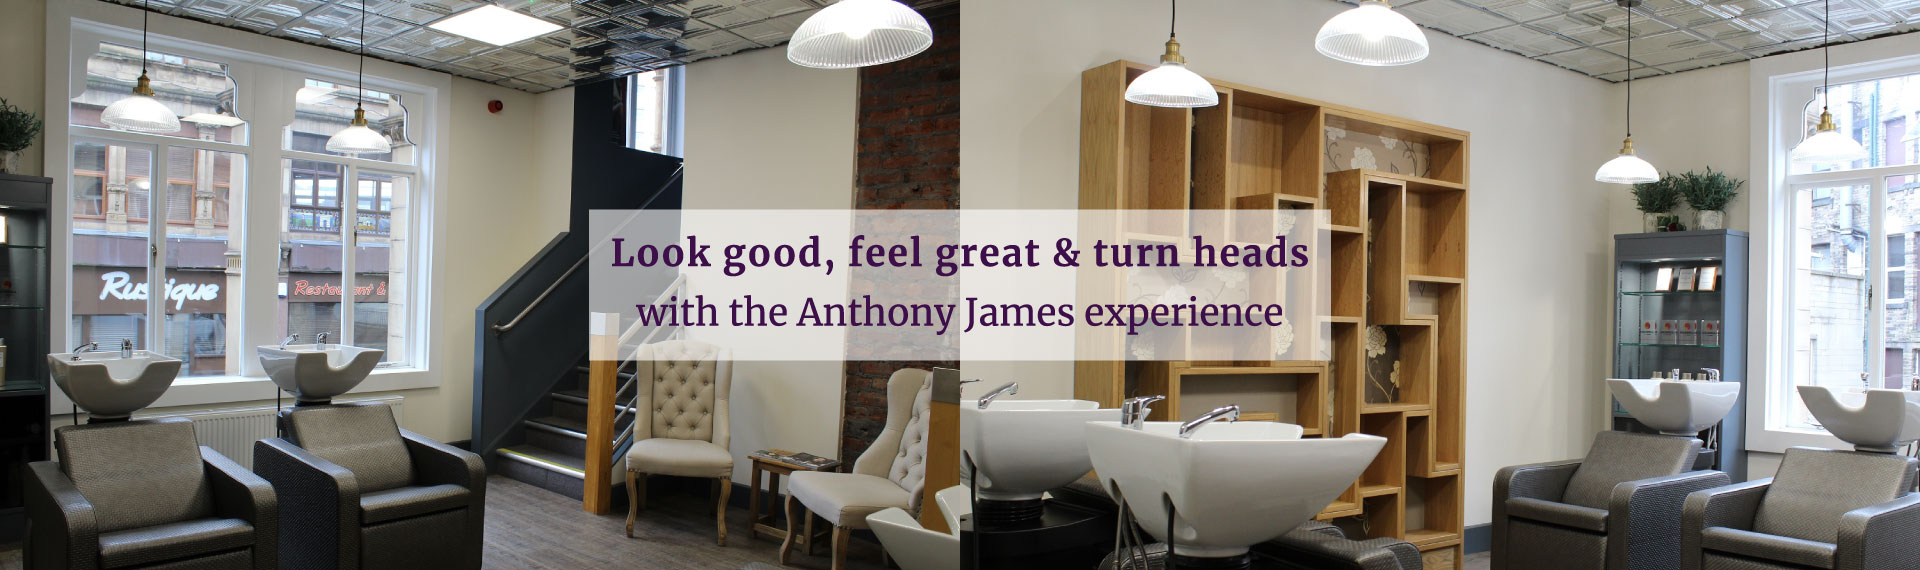 Anthony James Salon Experience, Hair Colour Experts In Halifax